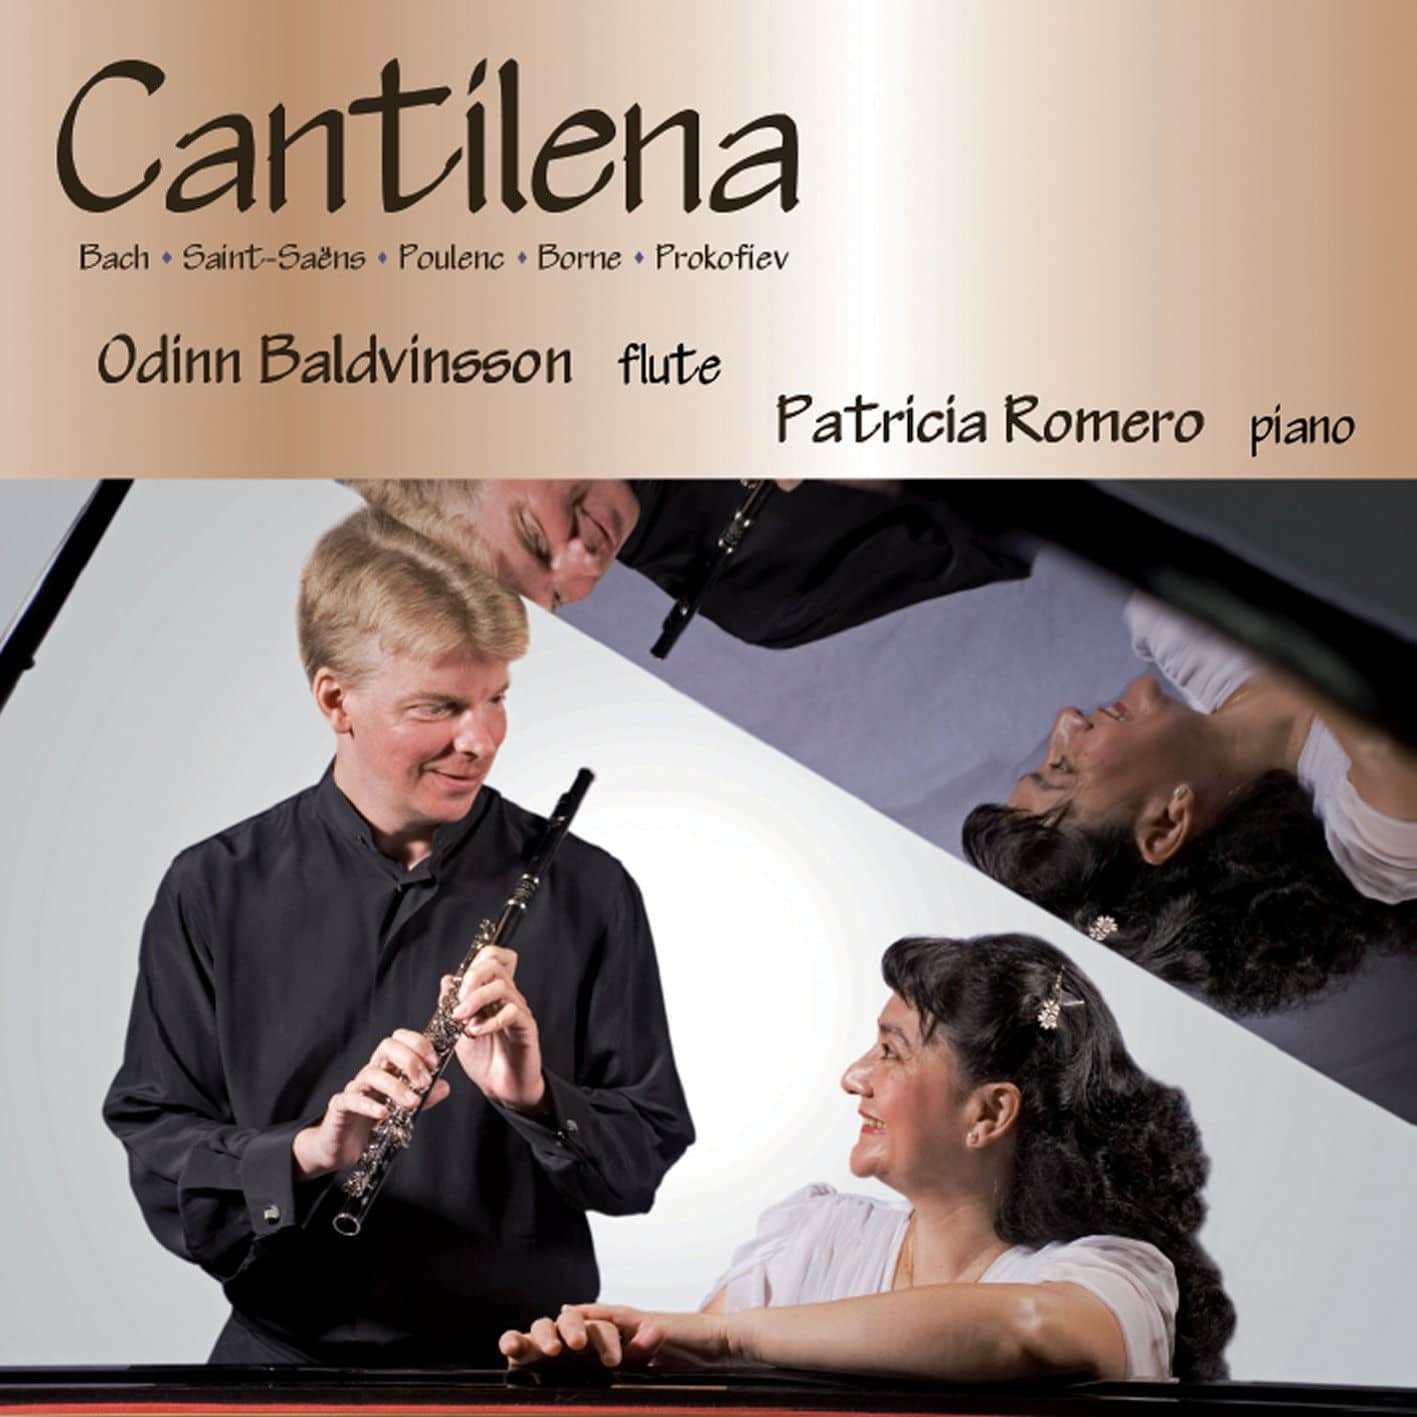 Cantilena - Music for Flute and Piano